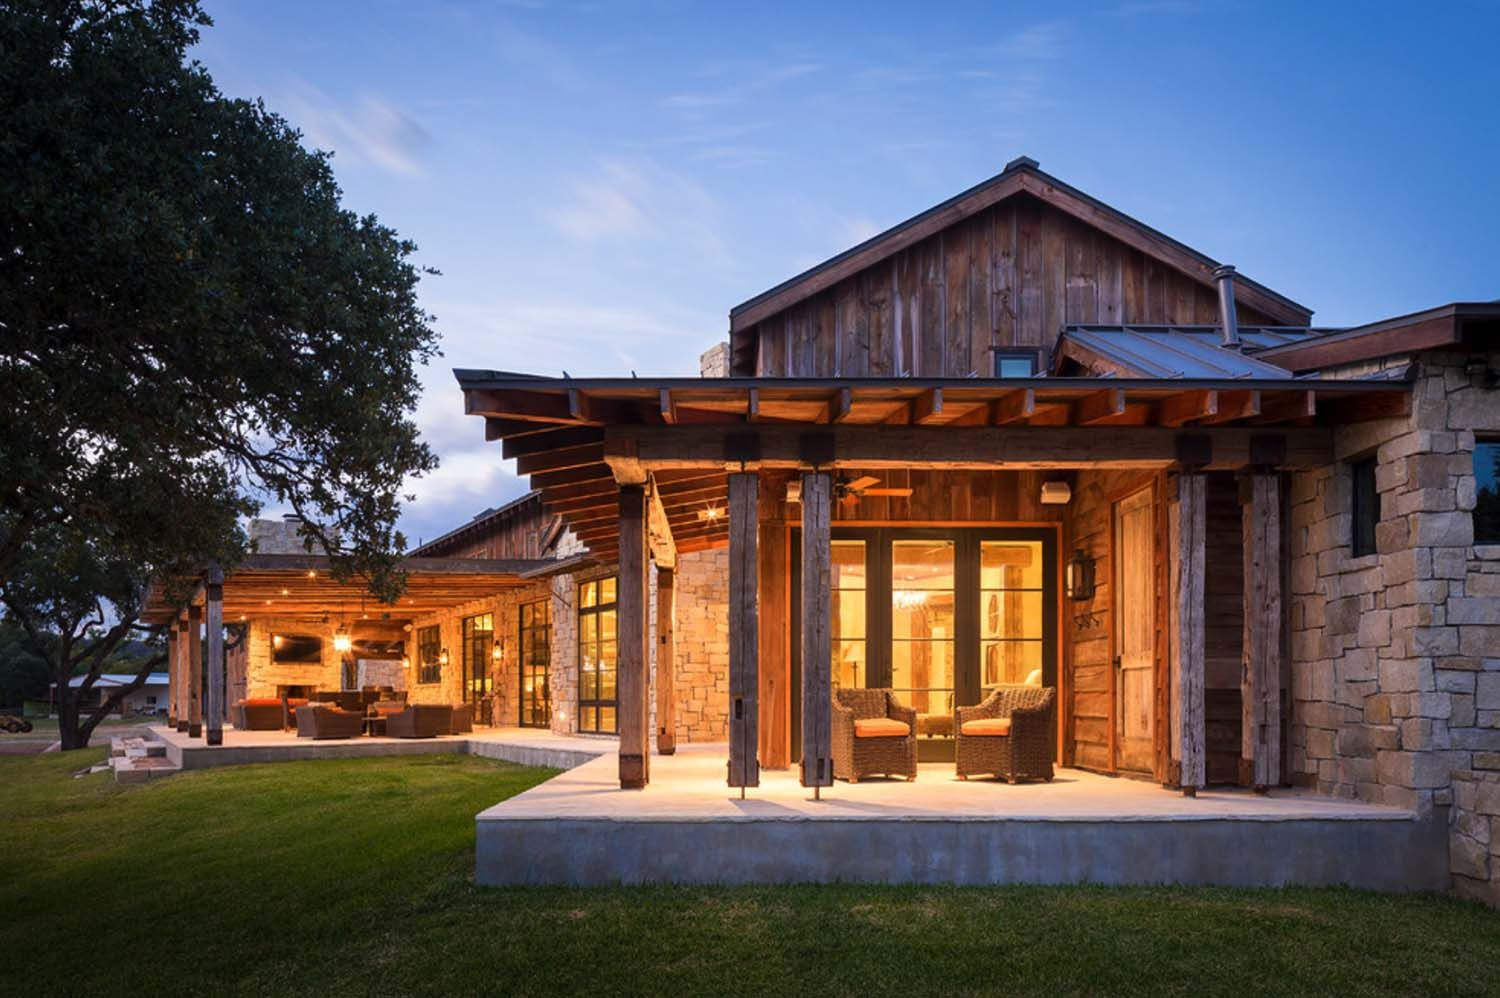 Modern rustic barn style retreat in texas hill country Hill country style homes